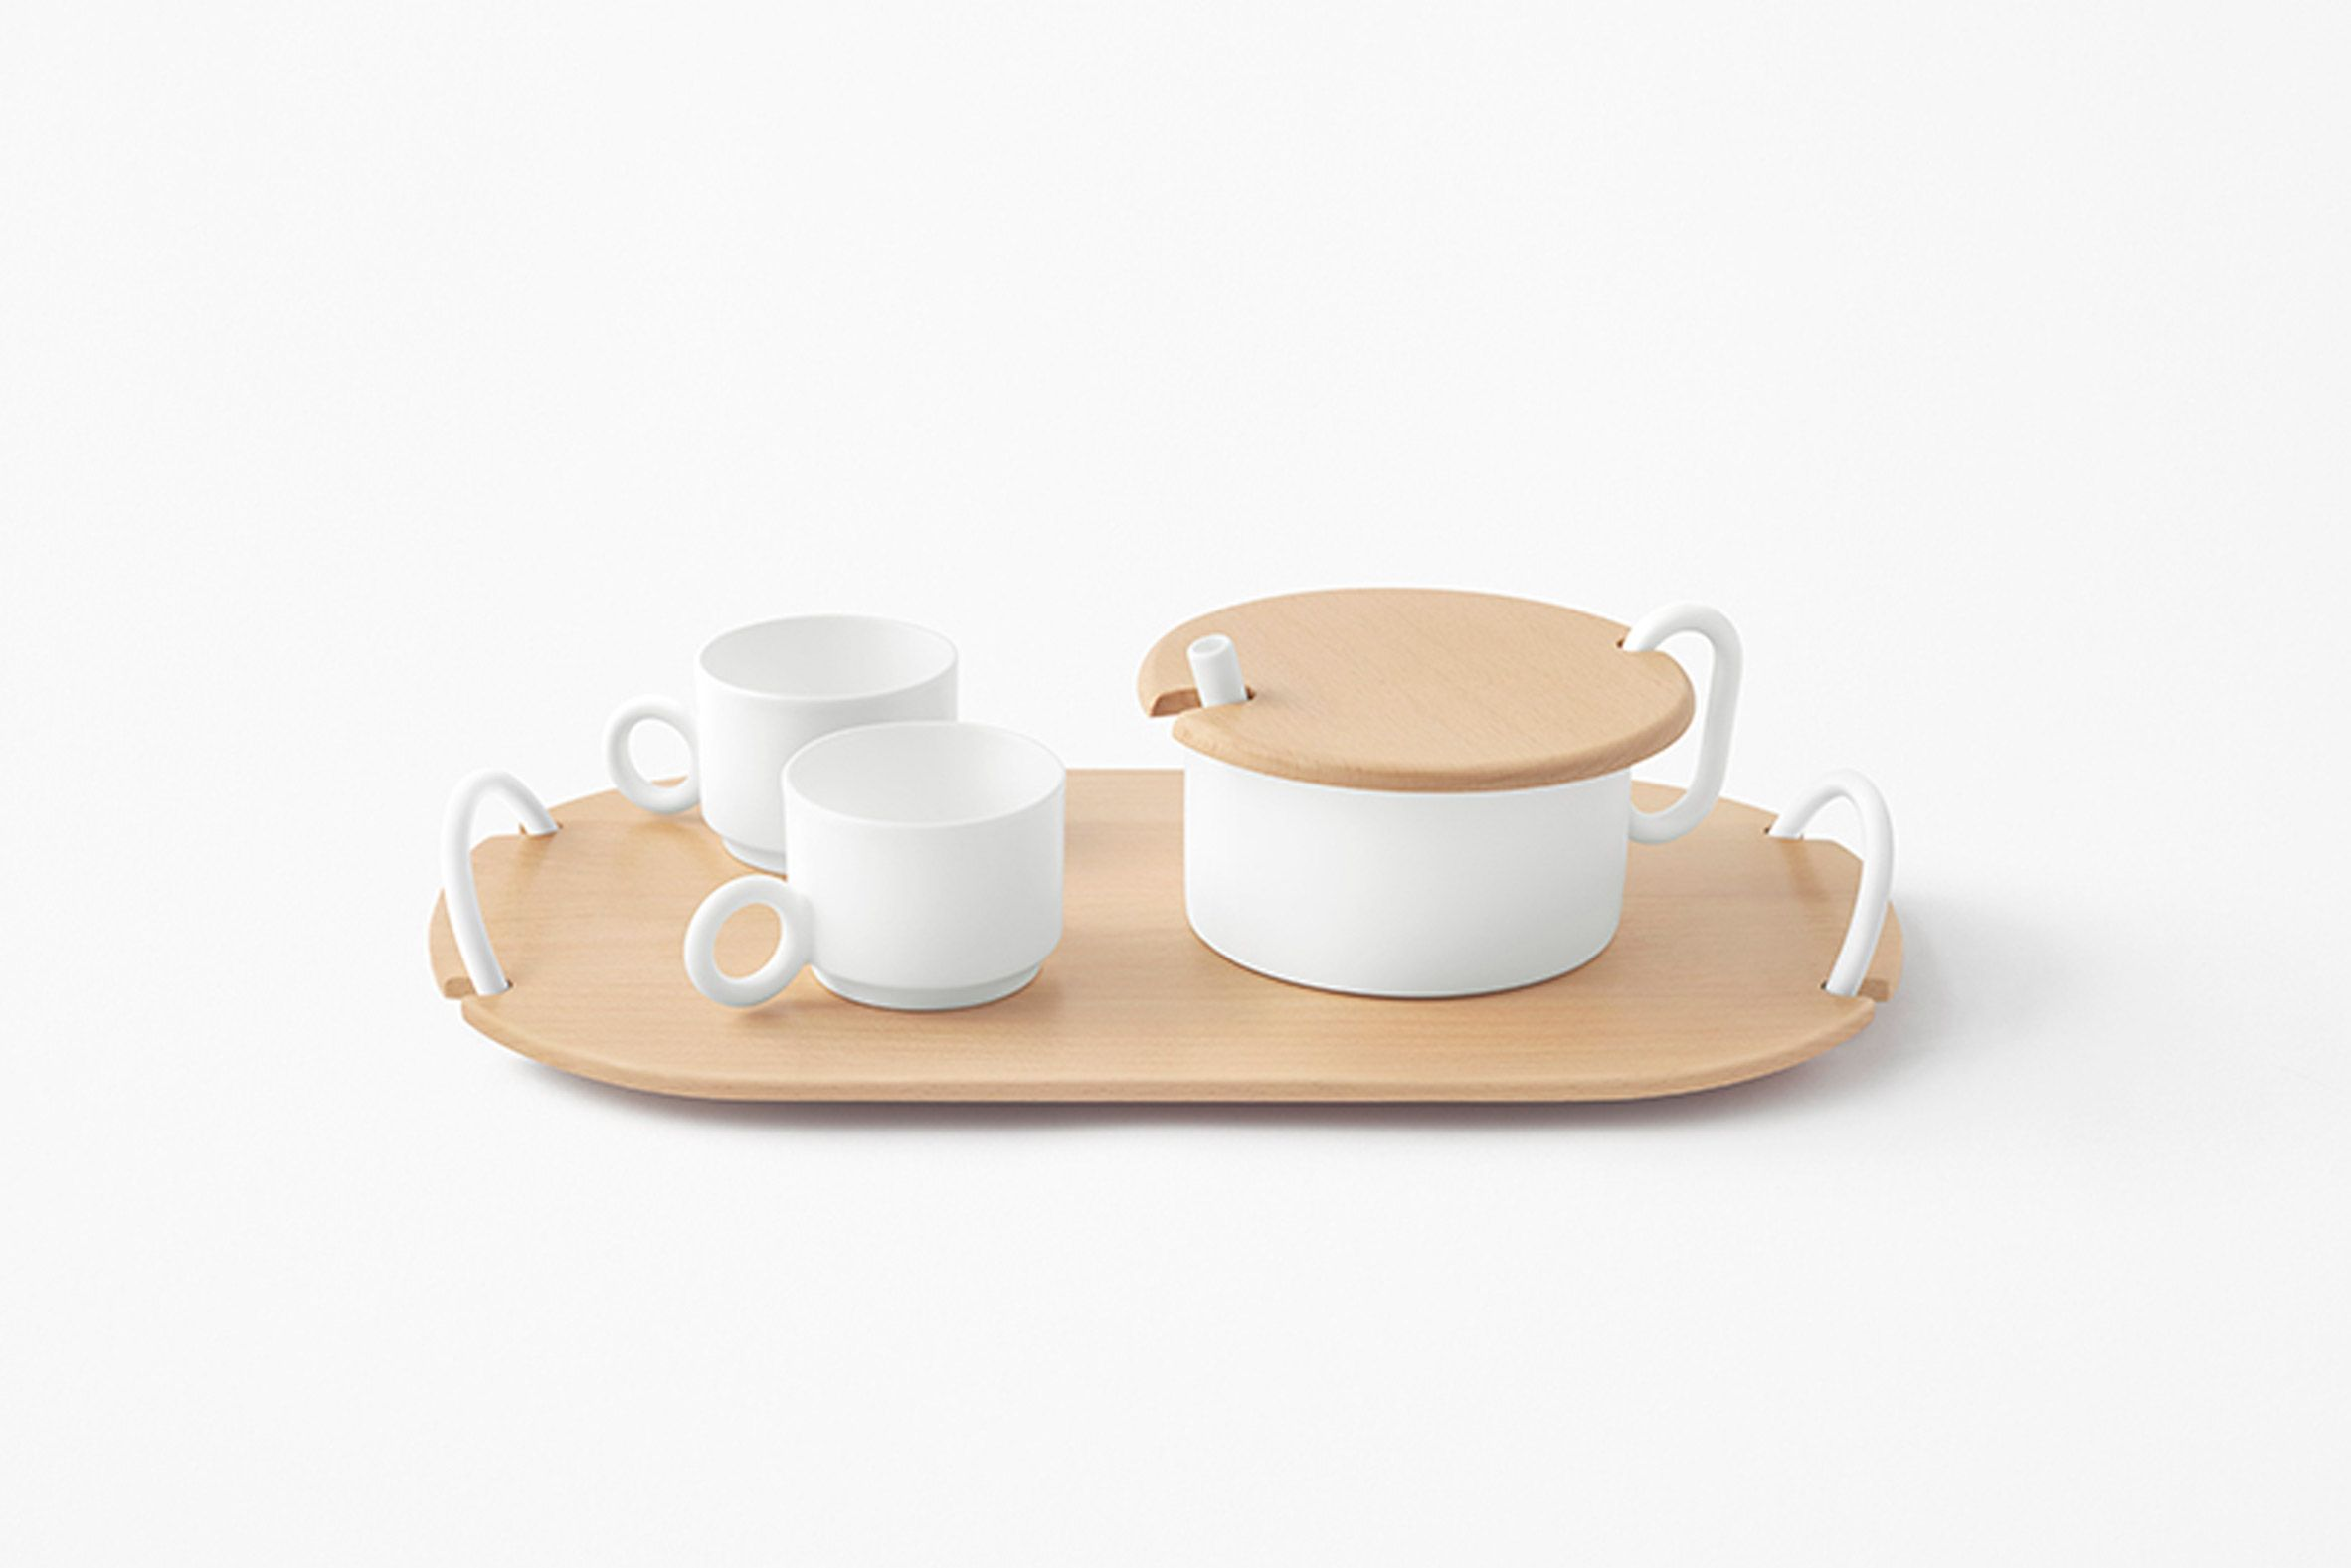 Zen Arte E Aroma Nendo Tableware Plank Coffee Tea Set For Zens Photo By